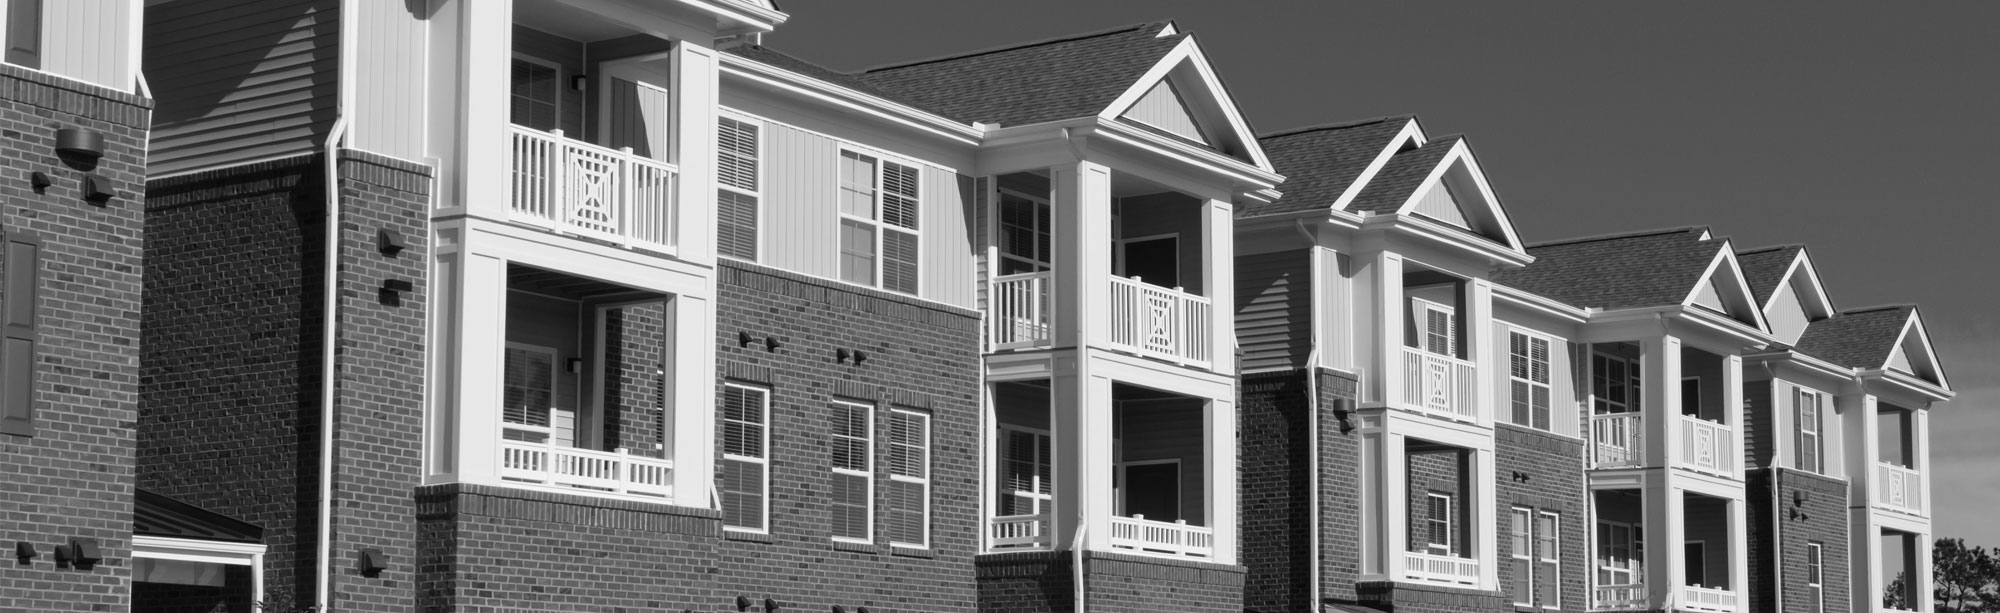 Whitsett Multi-Family Property Management